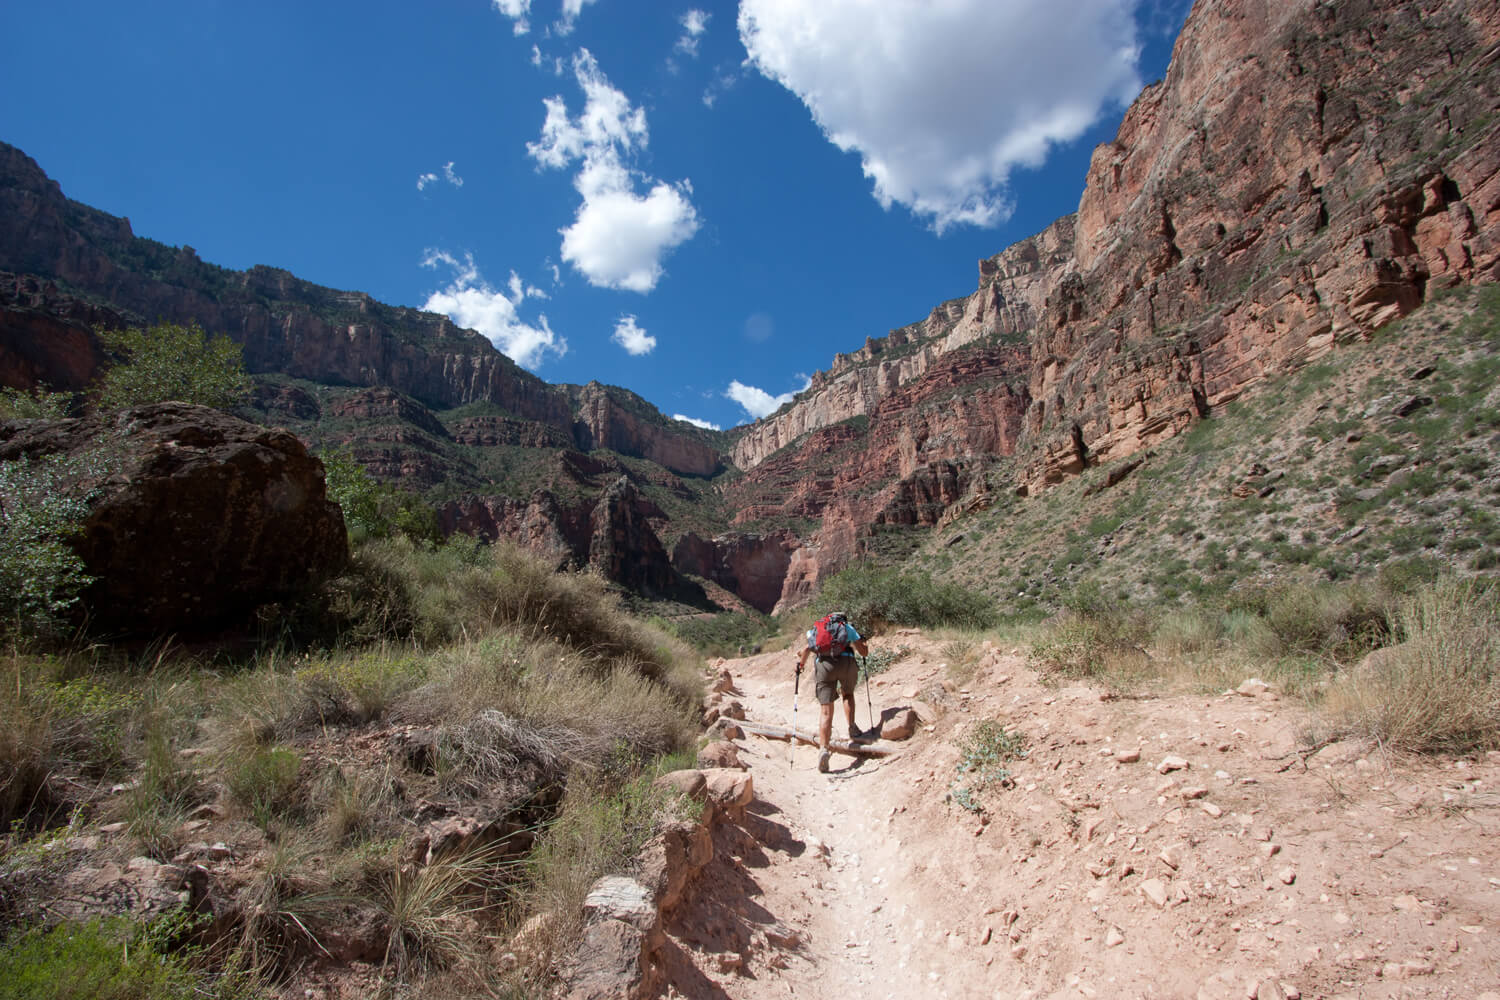 Terry hiking up the Bright Angel Trail just outside Indian Garden completing our rim-to-rim trek.